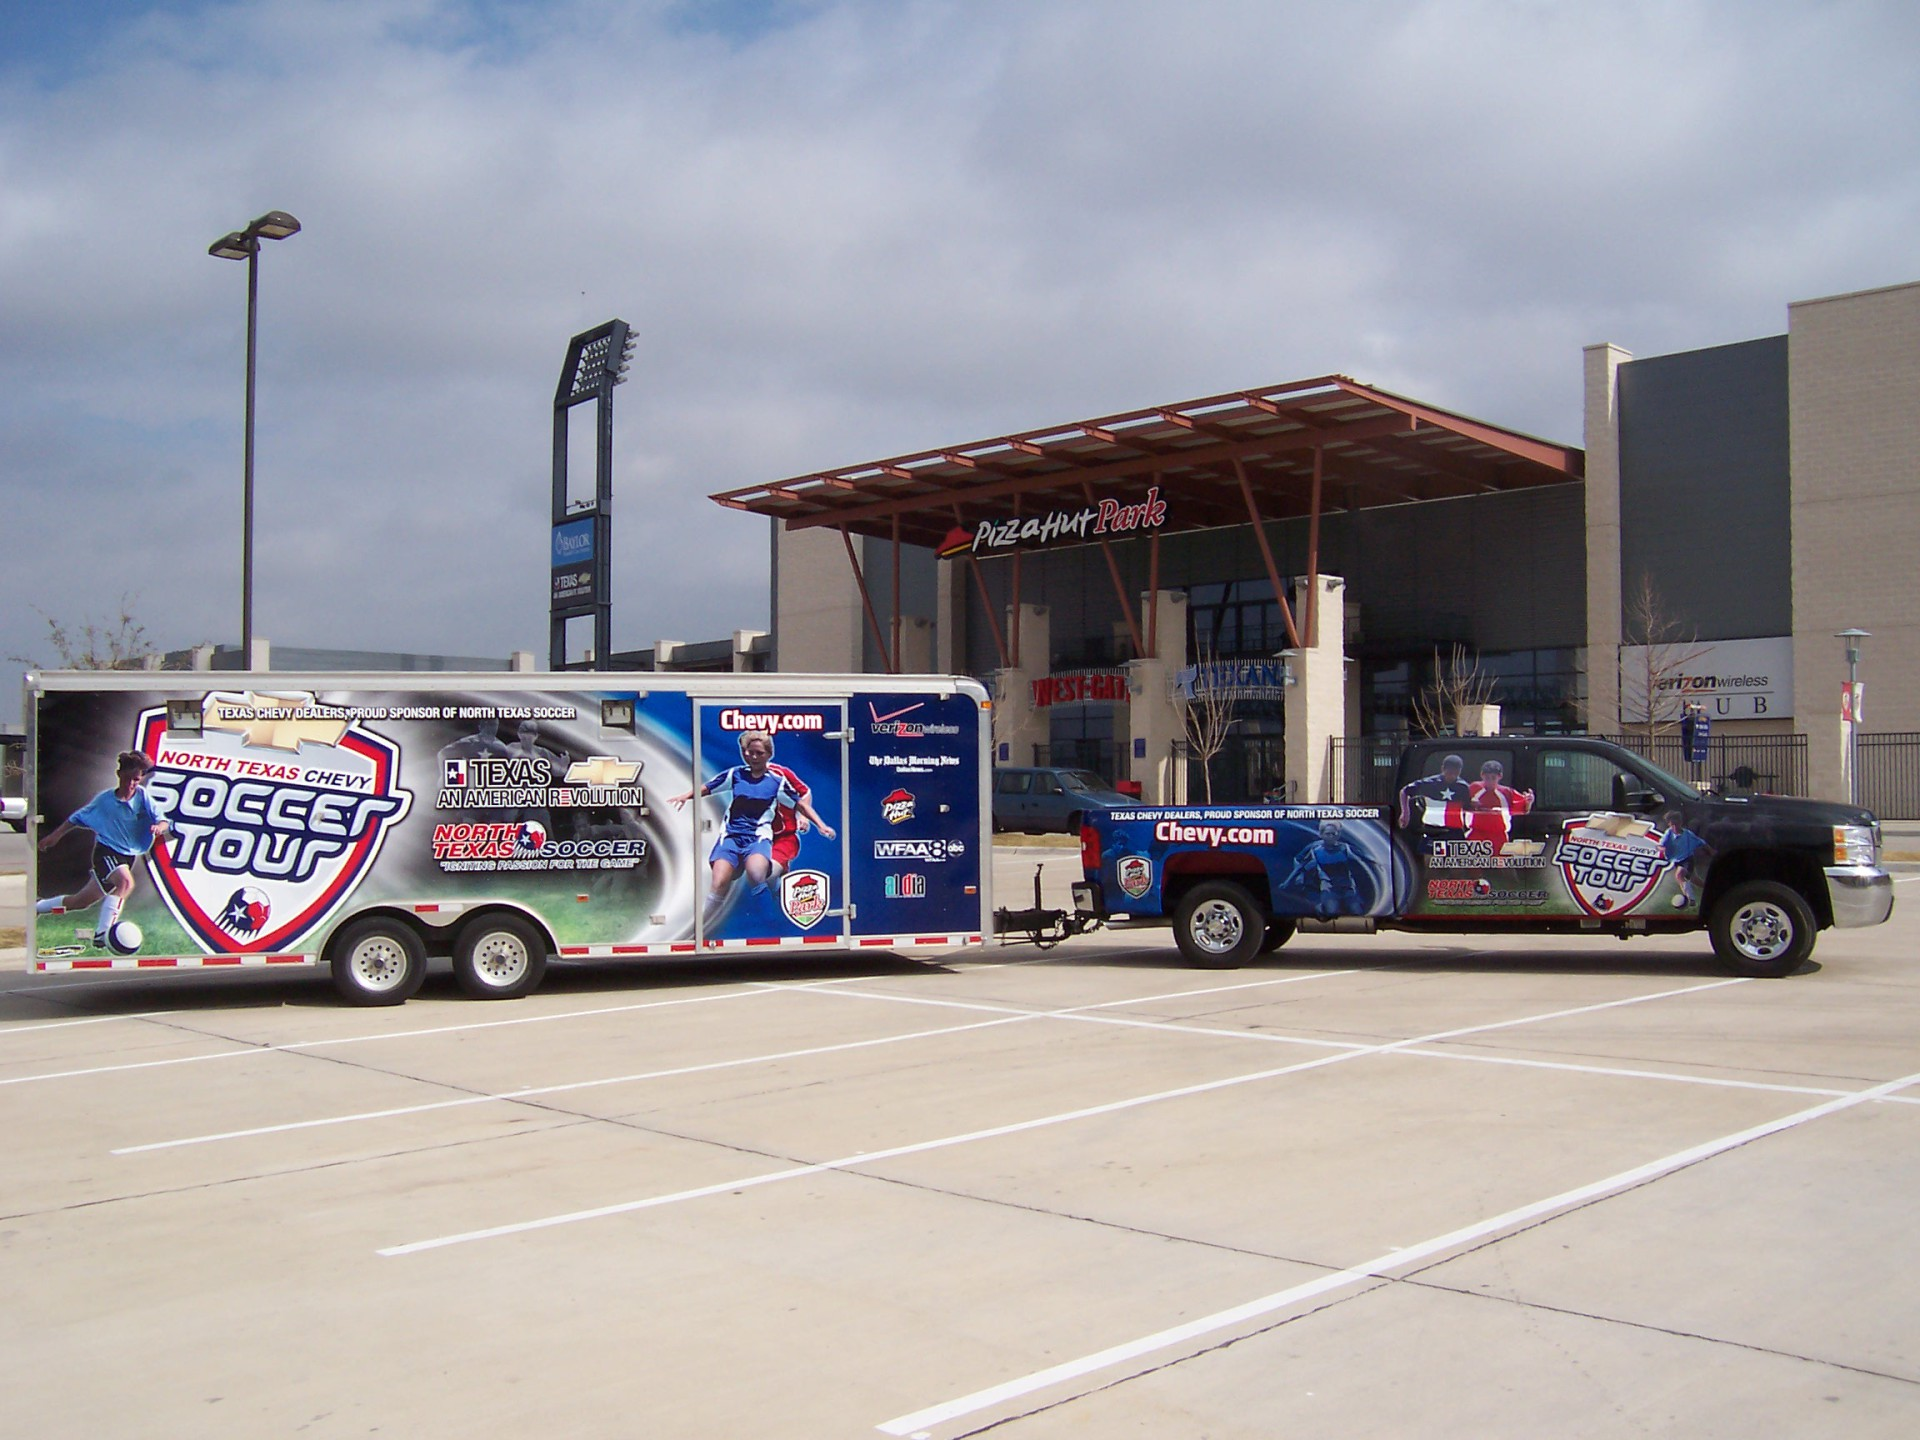 North Texas Soccor trailer wrap, Frisco Texas Vehicle wrap, North Texas vehicle wraps